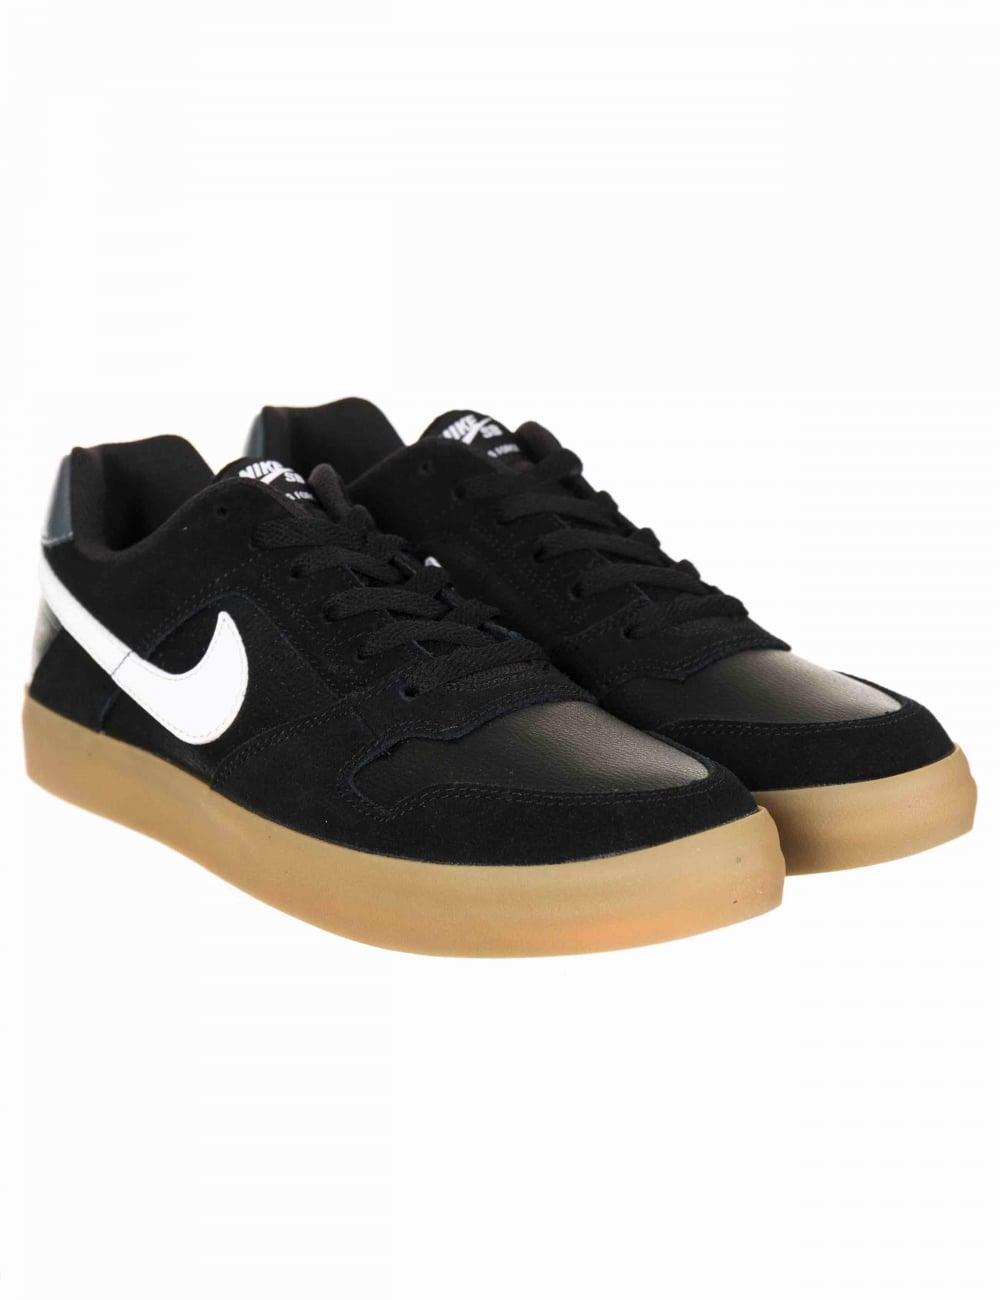 051277f194 Nike SB Delta Force Vulc Trainers - Black/White-Gum - Footwear from ...